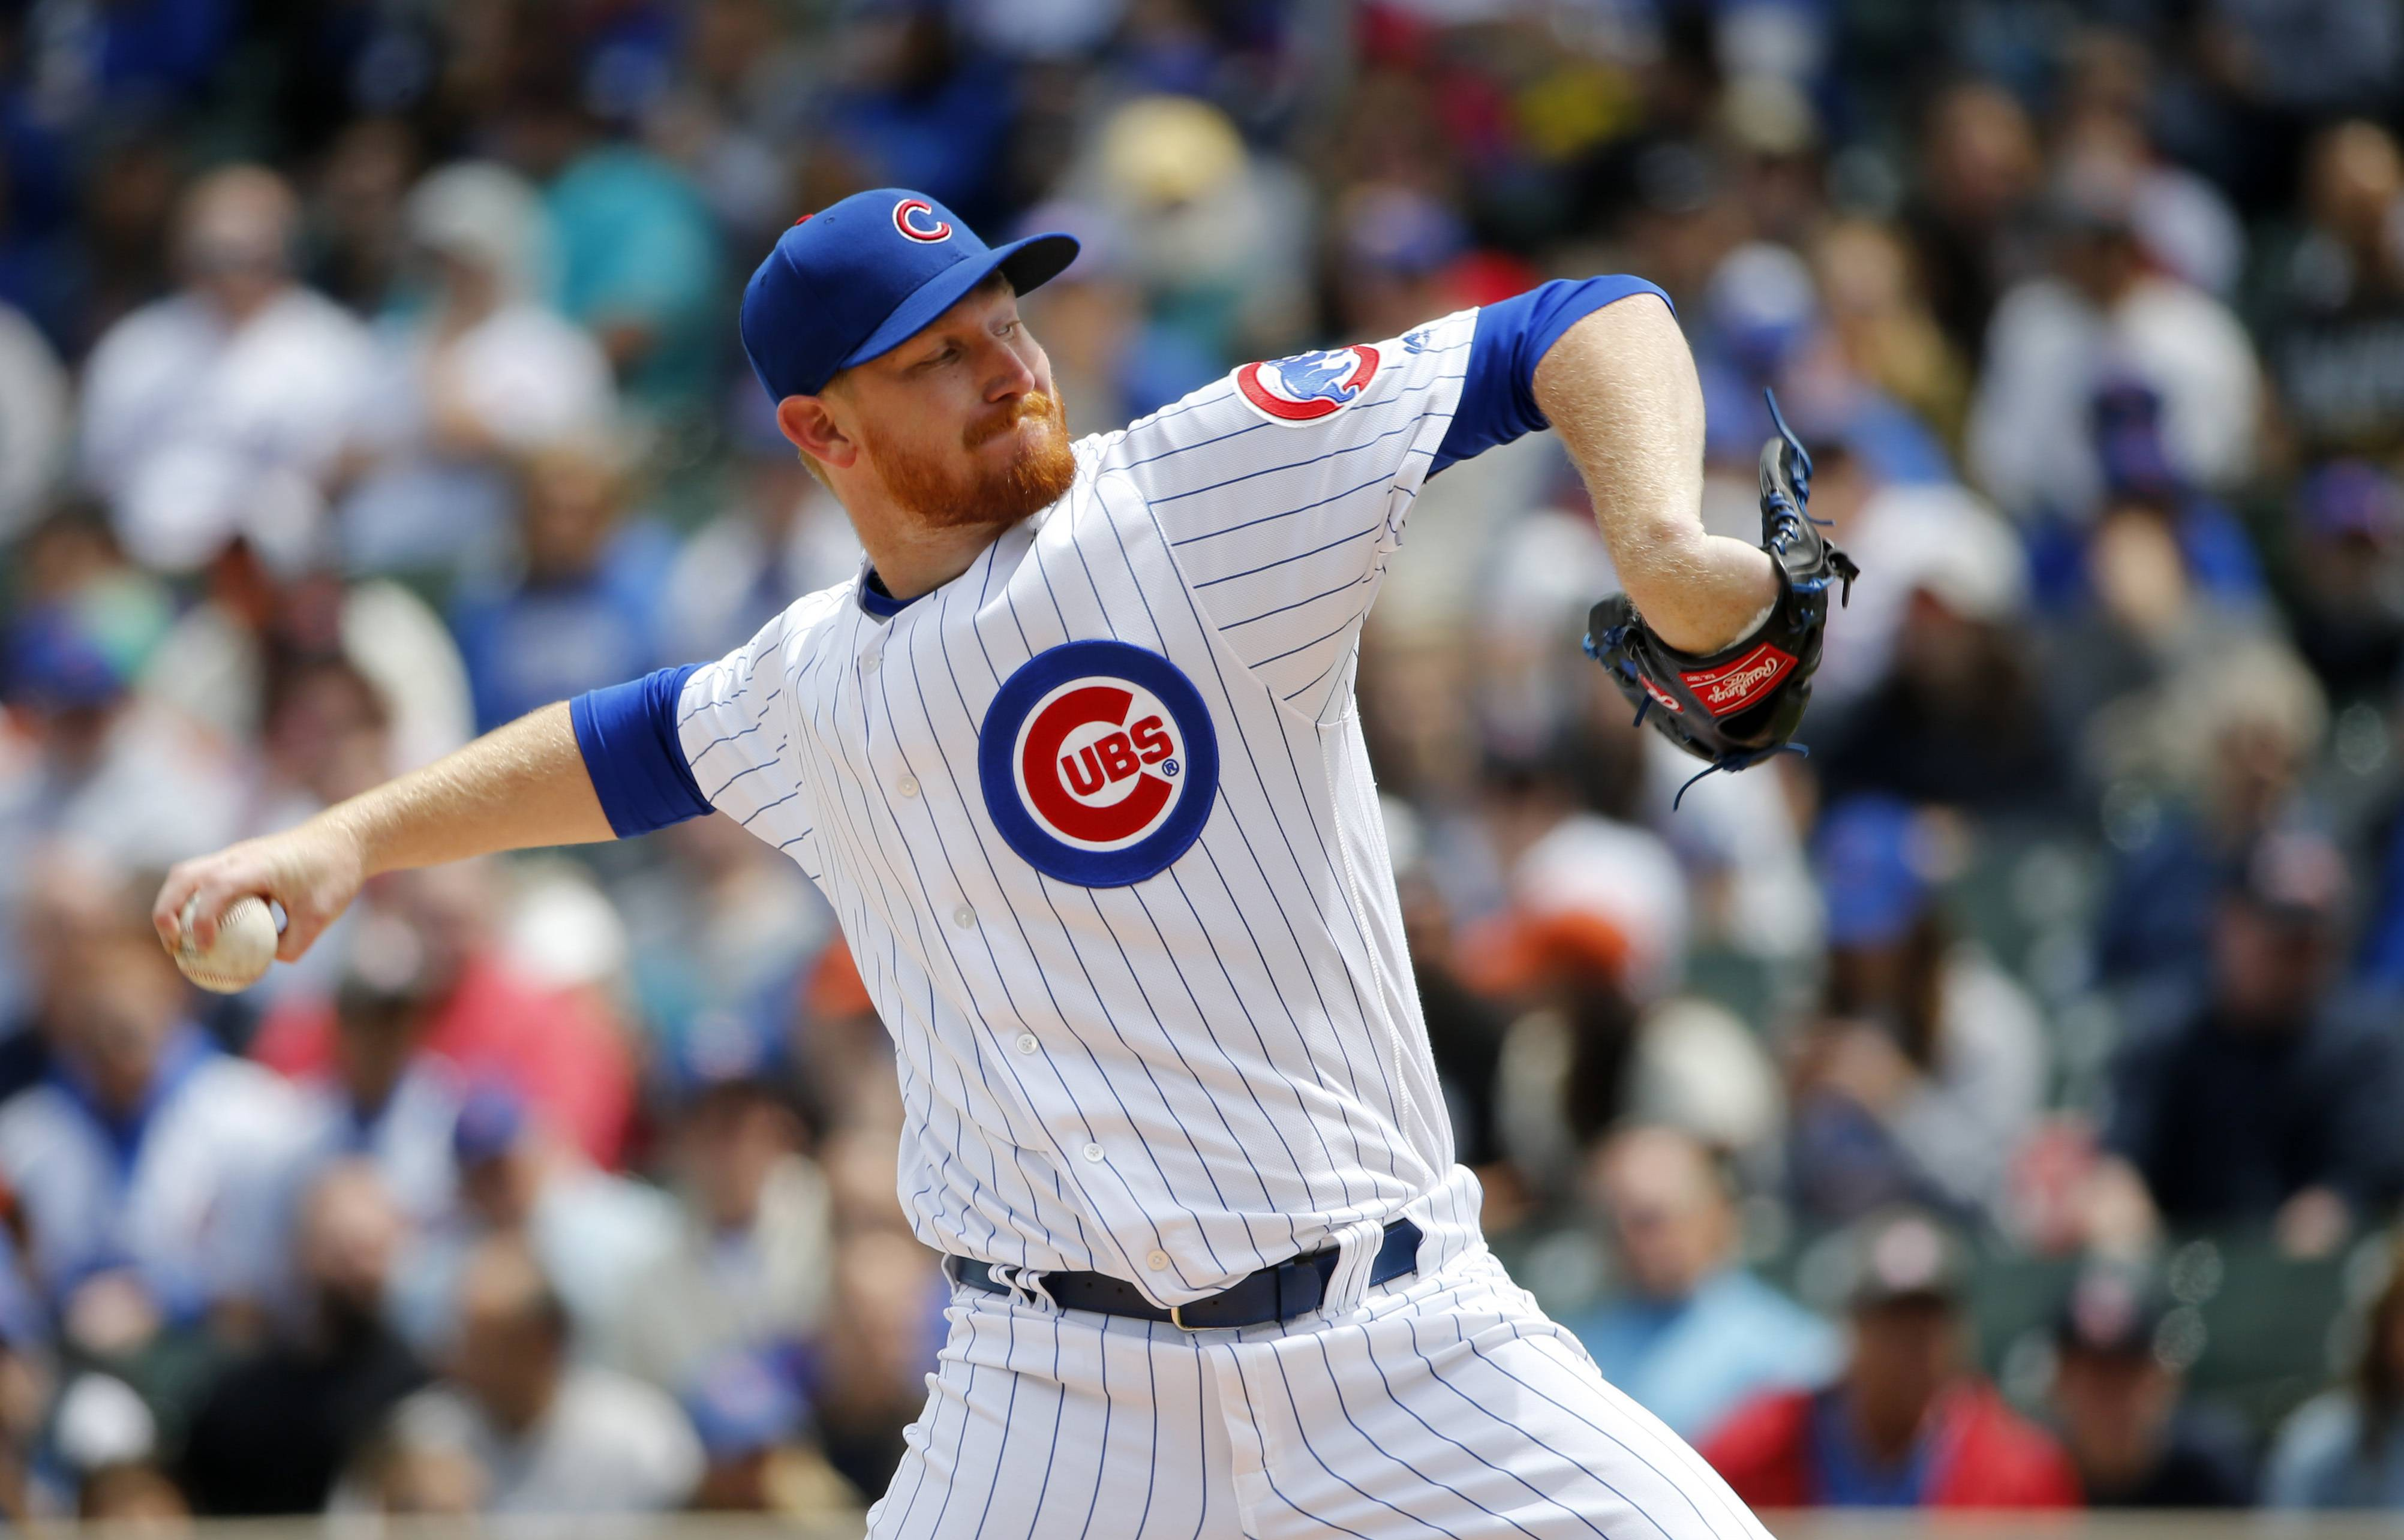 Chicago Cubs starting pitcher Eddie Butler delivers during the first inning of a baseball game against the San Francisco Giants Thursday, May 25, 2017, in Chicago. (AP Photo/Charles Rex Arbogast)